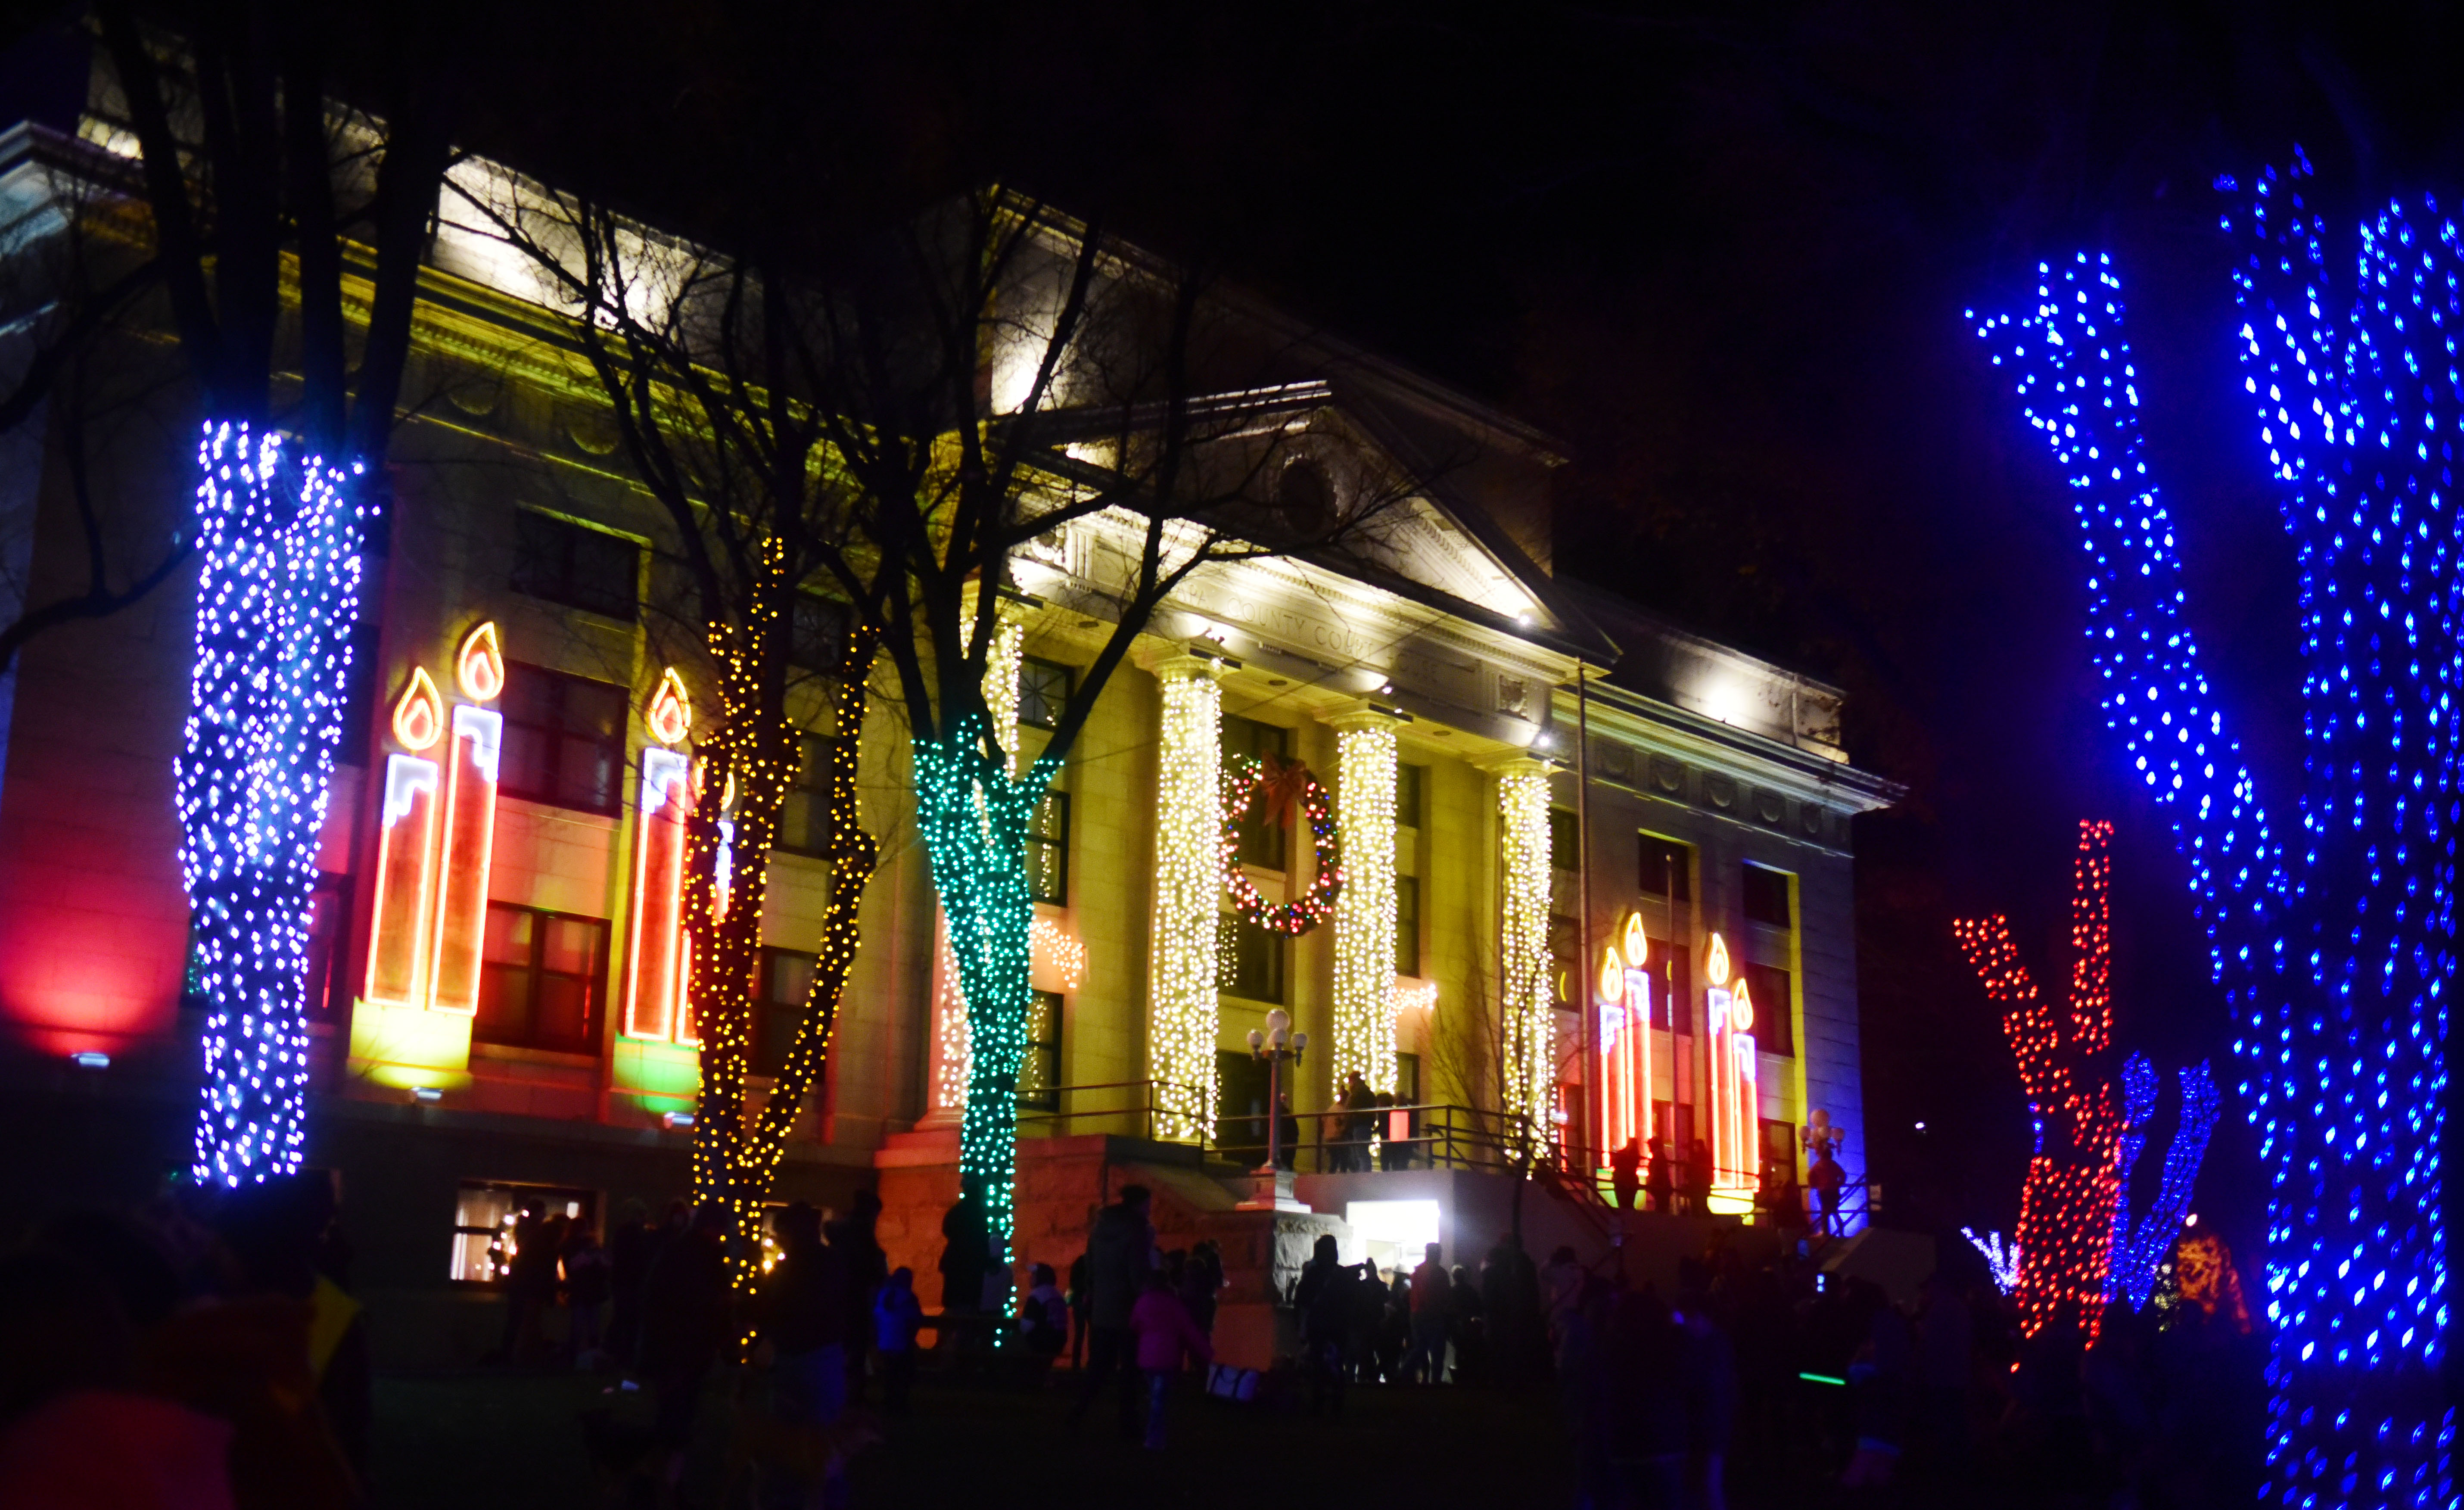 Christmas Events 2020 In Prescott, Az Christmas parade, courthouse lighting set for Dec. 7 in downtown